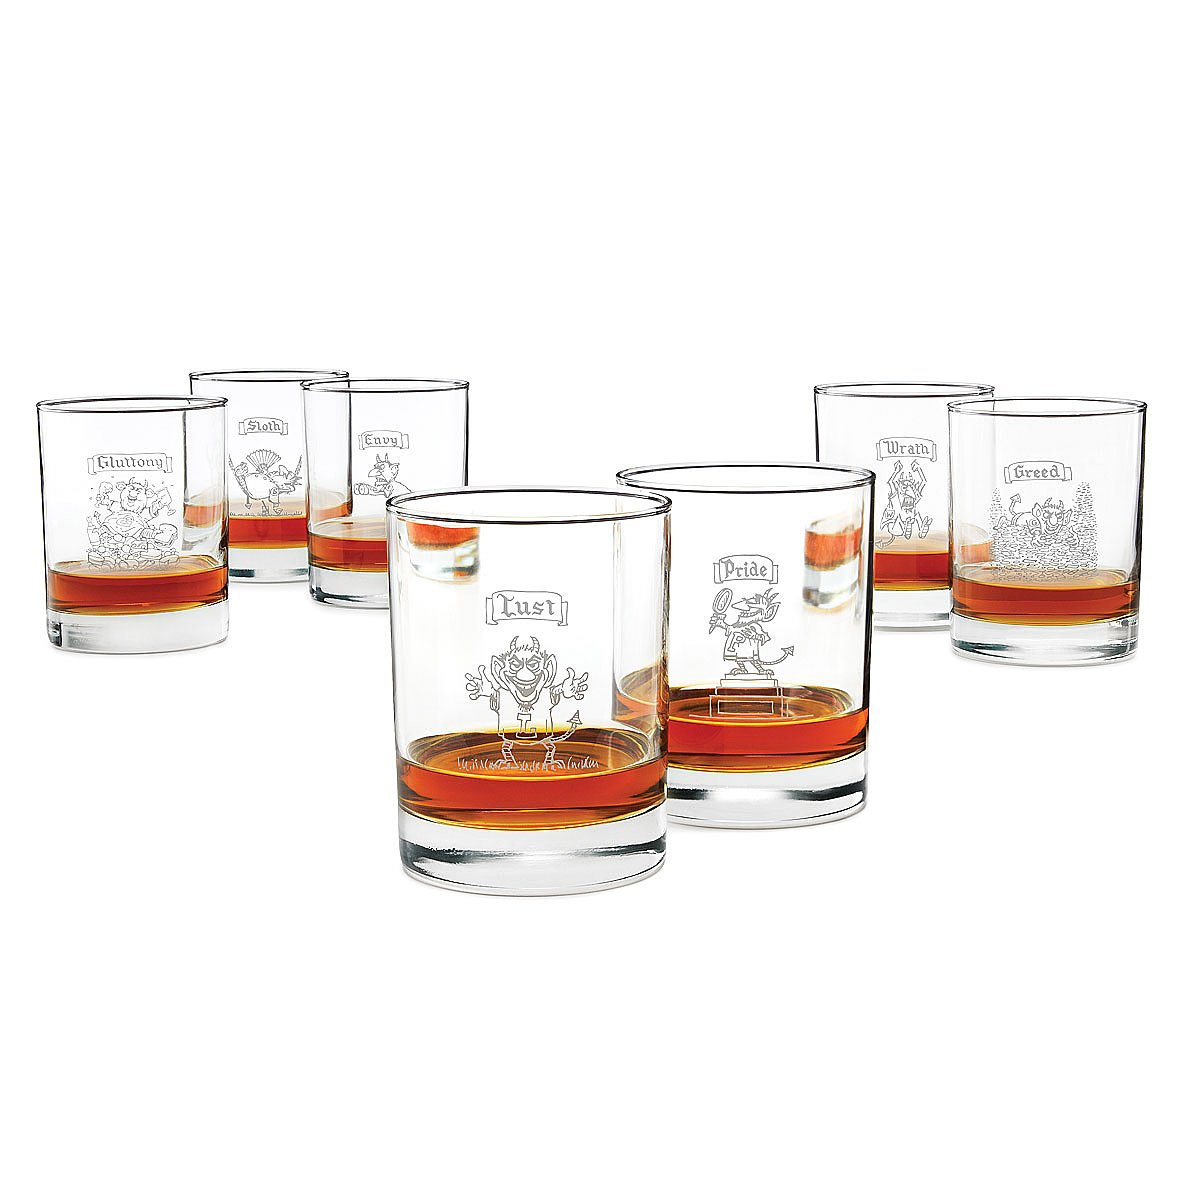 7 Deadly Sins Wine Glasses 7 Deadly Sins Glasses Set Of 7 Double Old Fashioned Glass